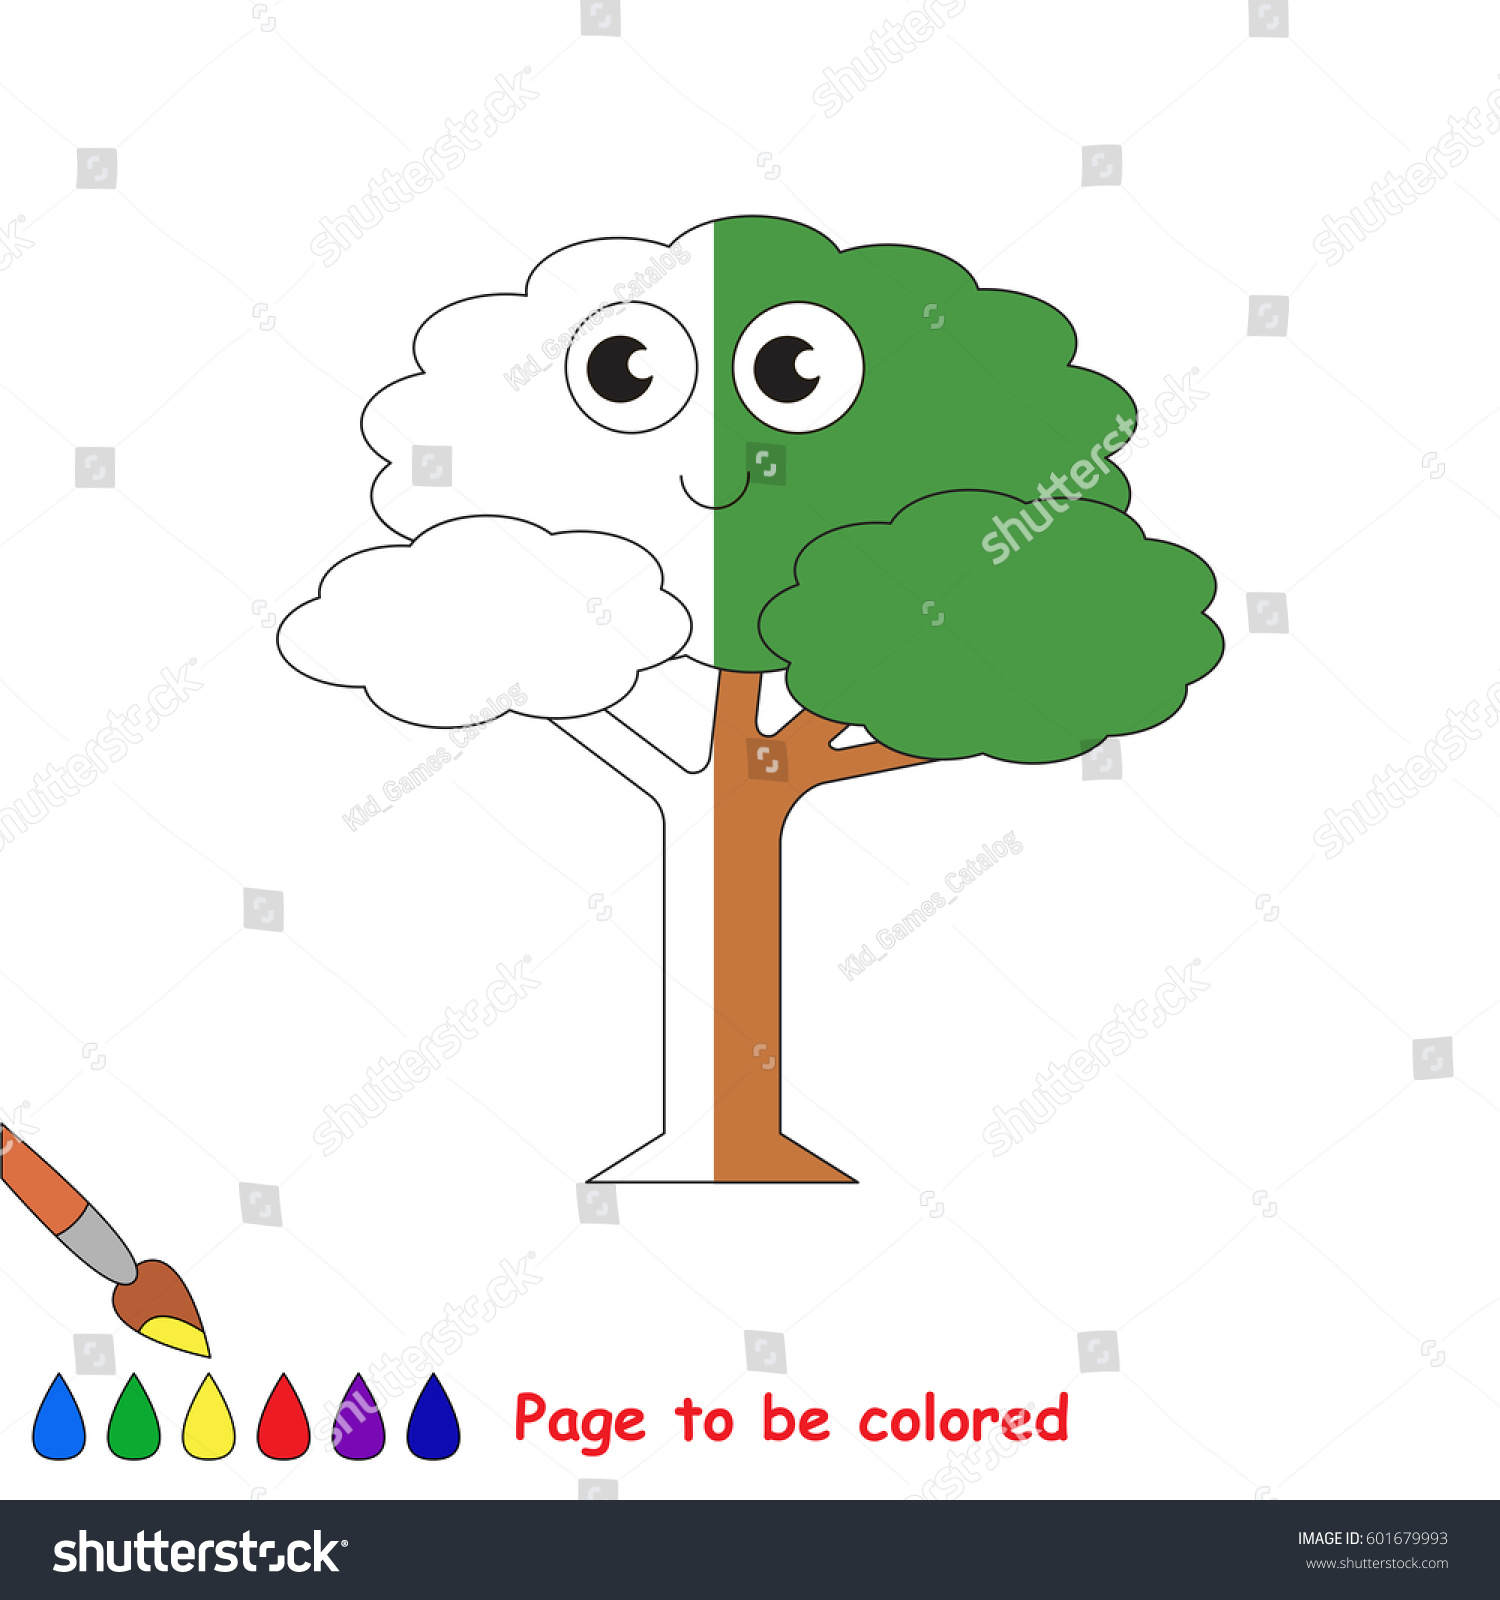 Leaf Tree Coloring Book Educate Preschool Stock Vector (Royalty Free ...